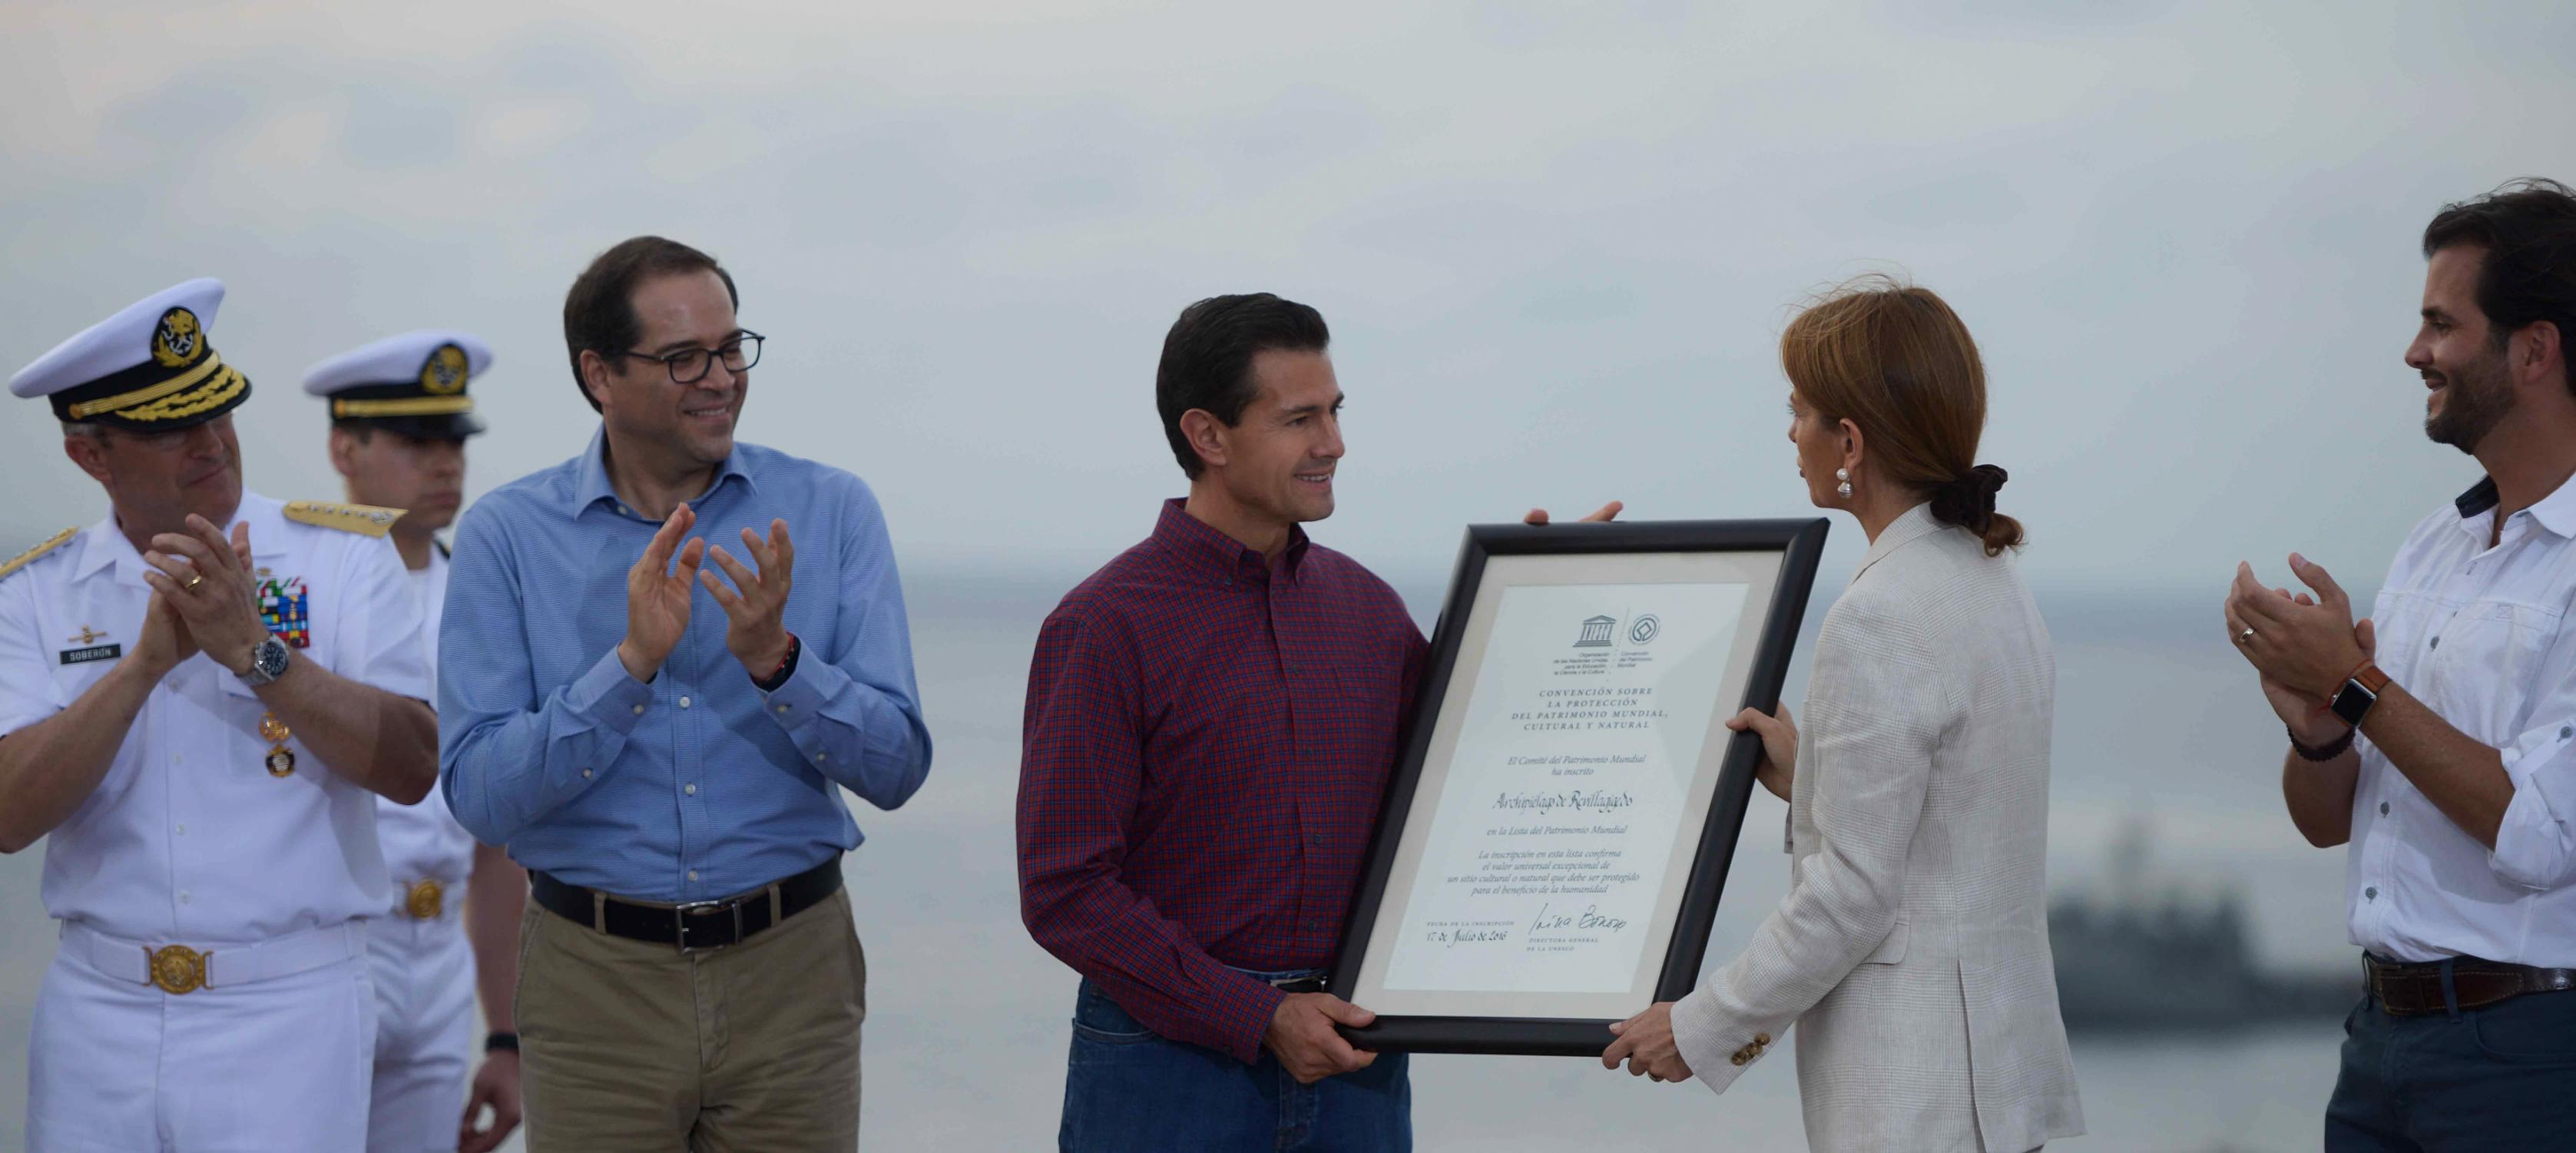 Mexico continues to fulfill its role of global responsibility, and does so through world heritage: UNESCO.